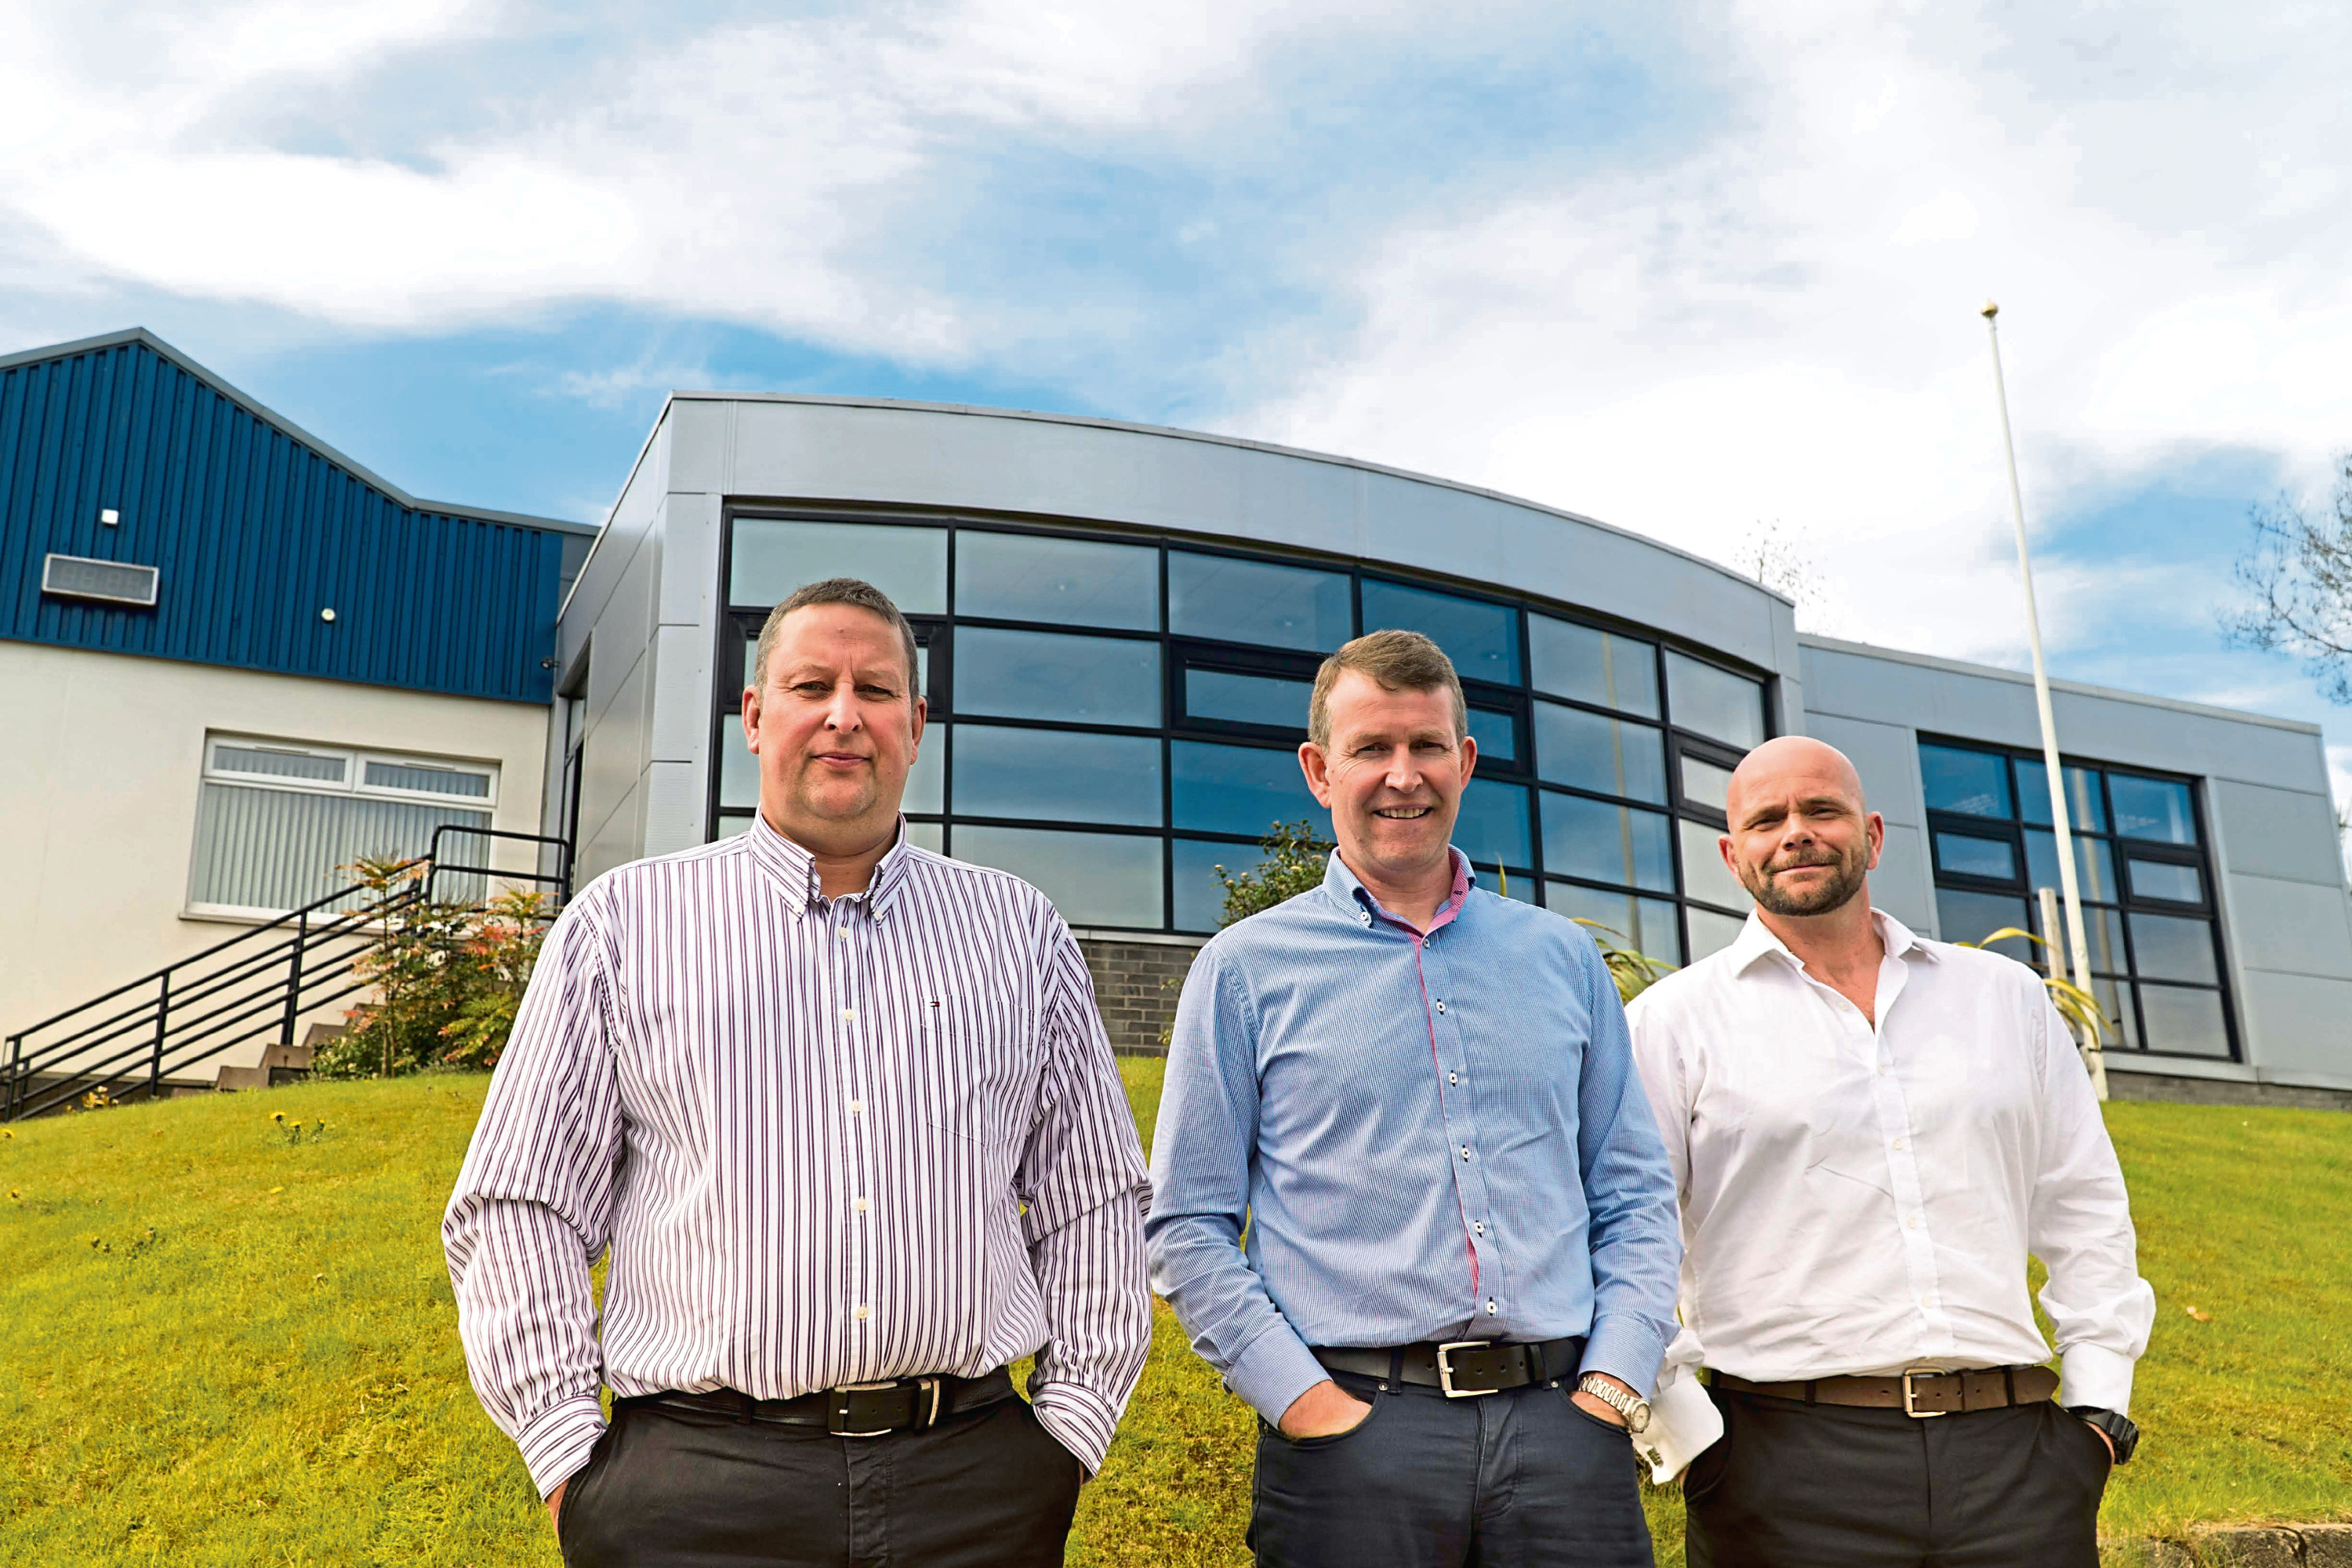 Wellpro Group founders Scott Fraser (technical director), Jim Thomson (CEO) and Grant Forsyth (operations director)